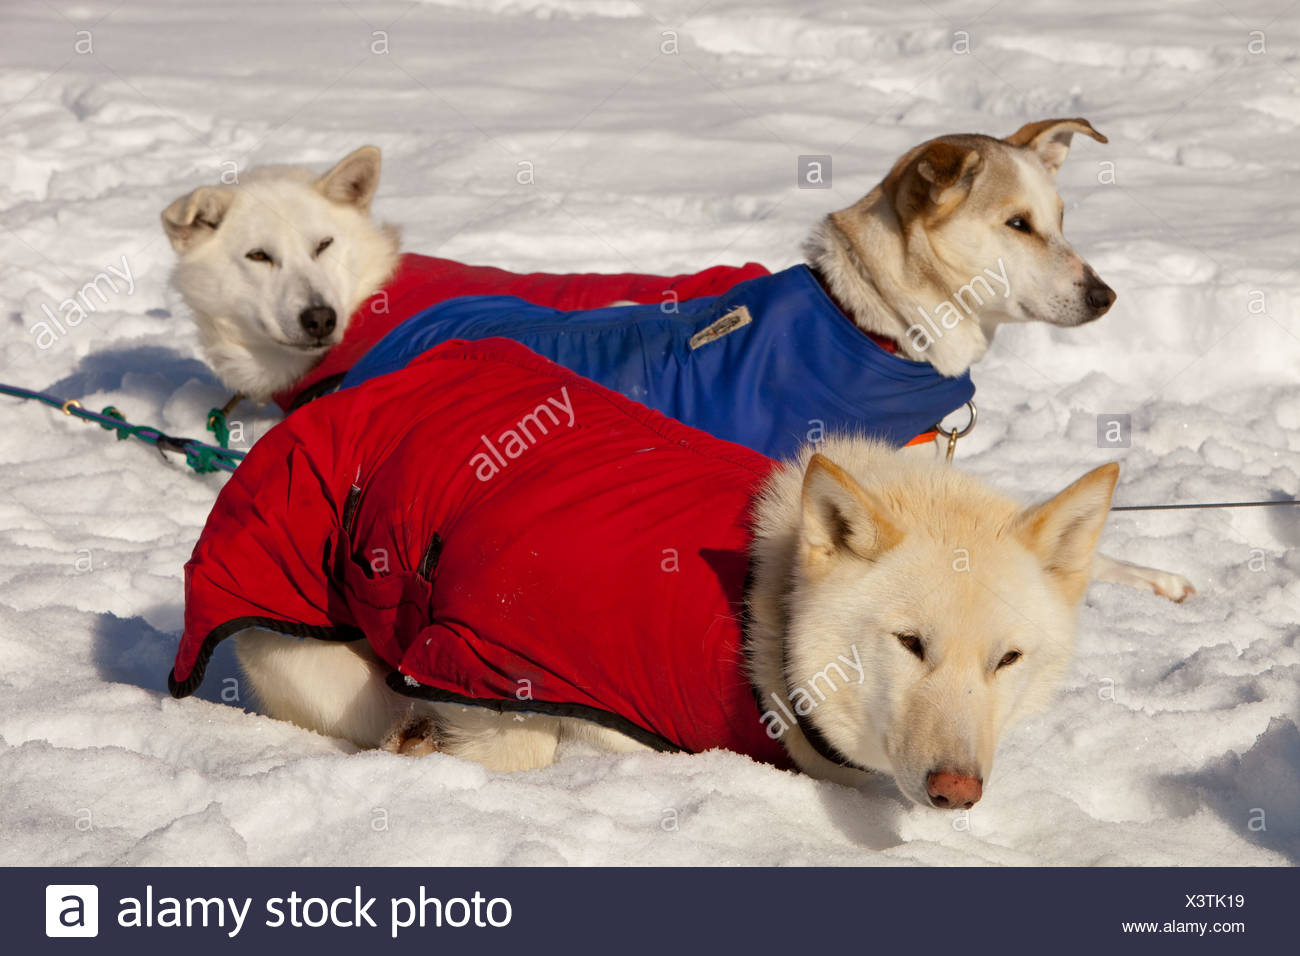 White sled dogs with dog coats resting in snow and sun, stake out cable, Alaskan Huskies, Yukon Territory, Canada - Stock Image